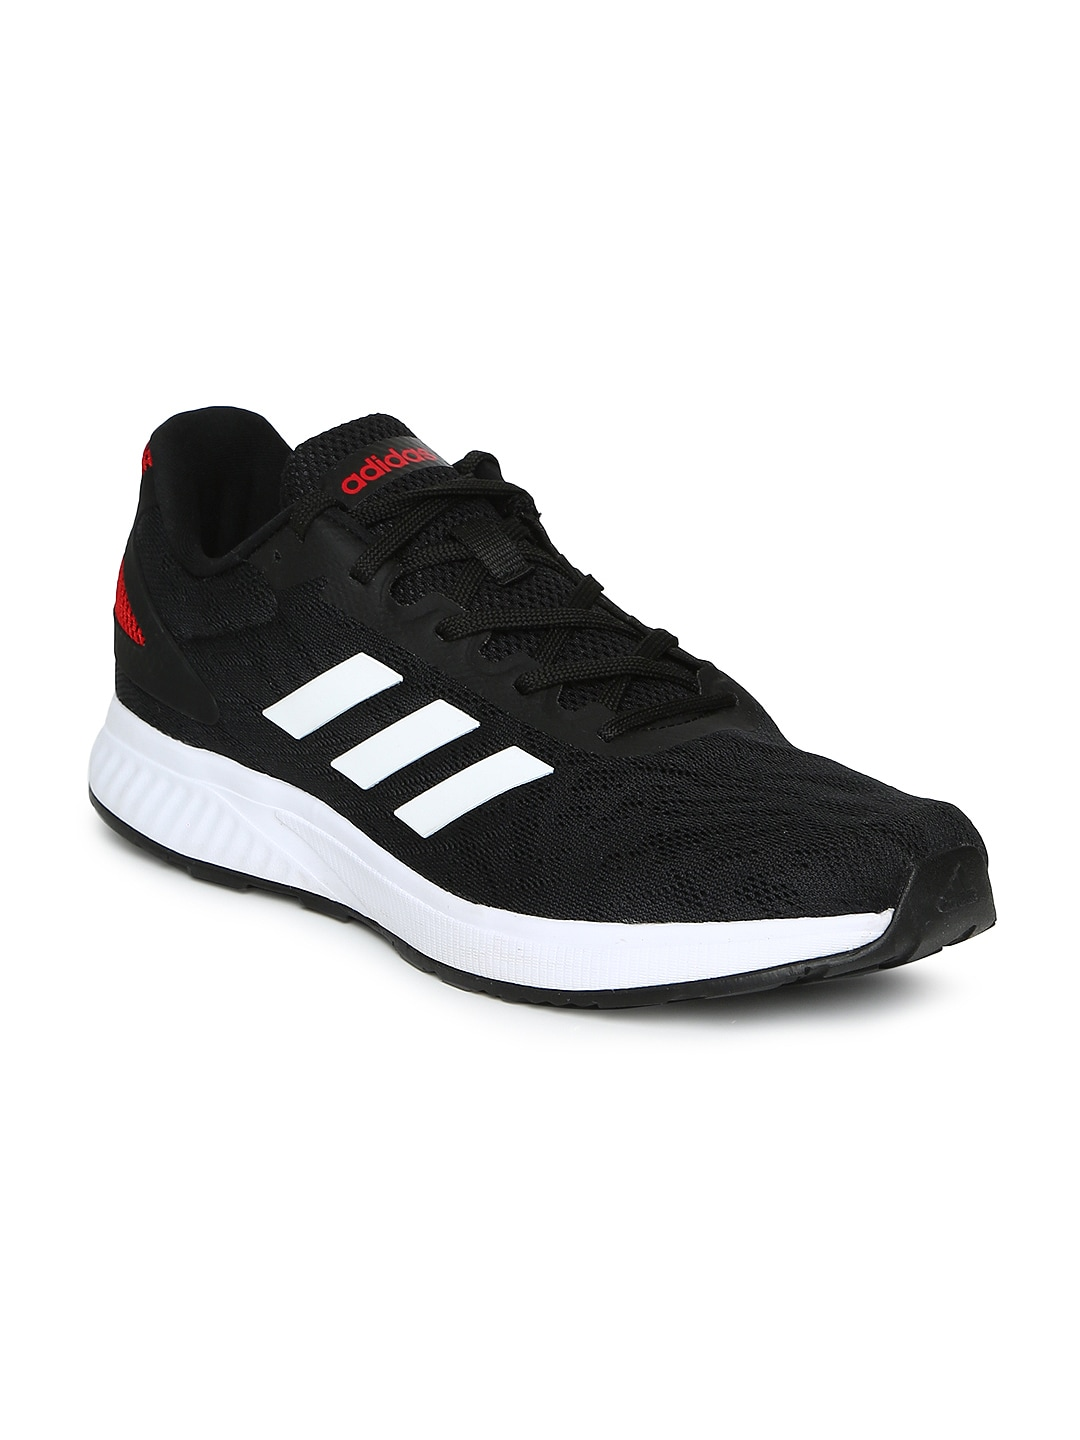 buy popular 45742 a607d Adidas Shoes - Buy Adidas Shoes for Men   Women Online - Myntra